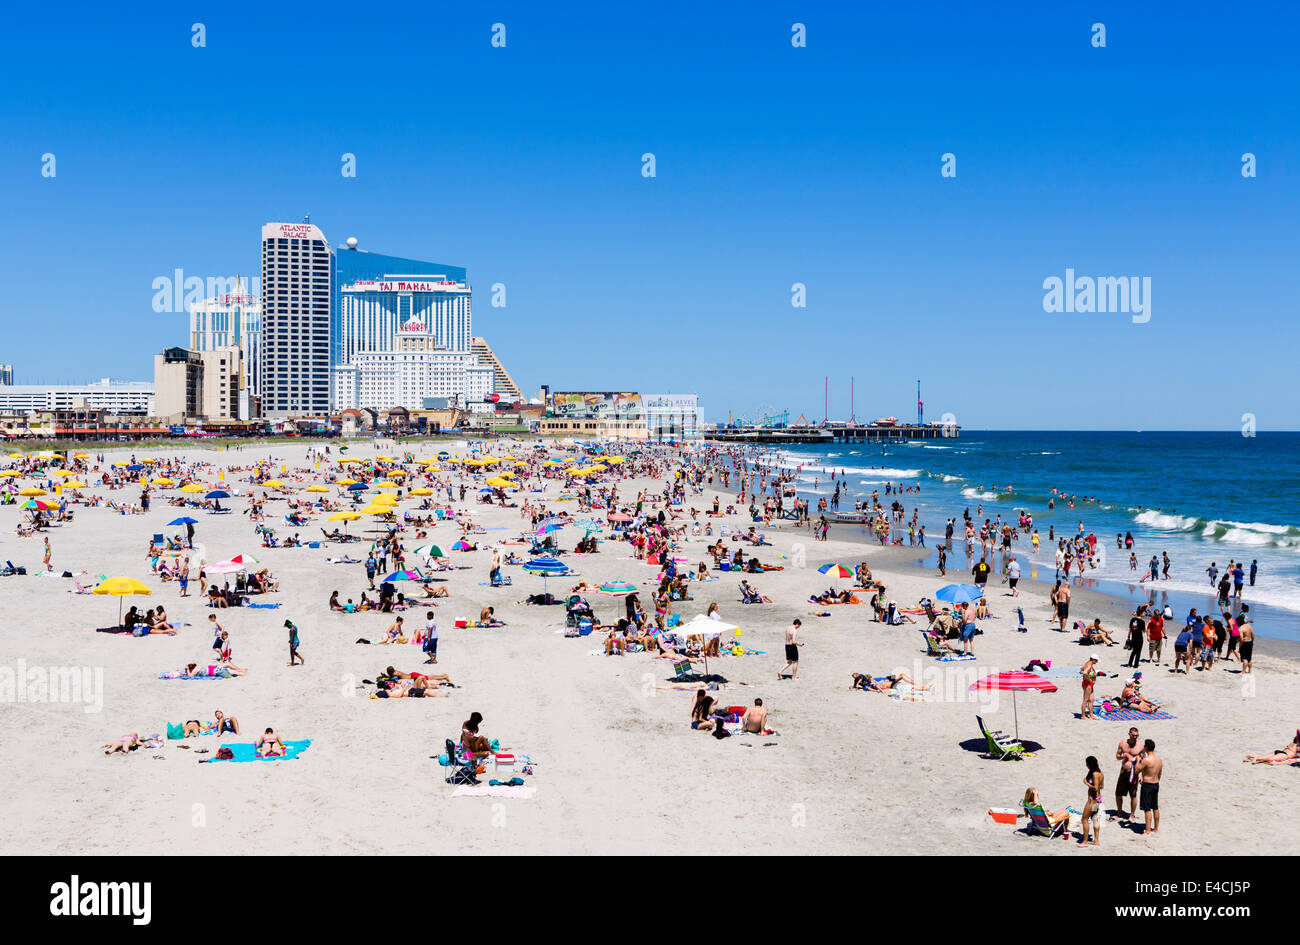 The beach in Atlantic City, New Jersey, USA - Stock Image